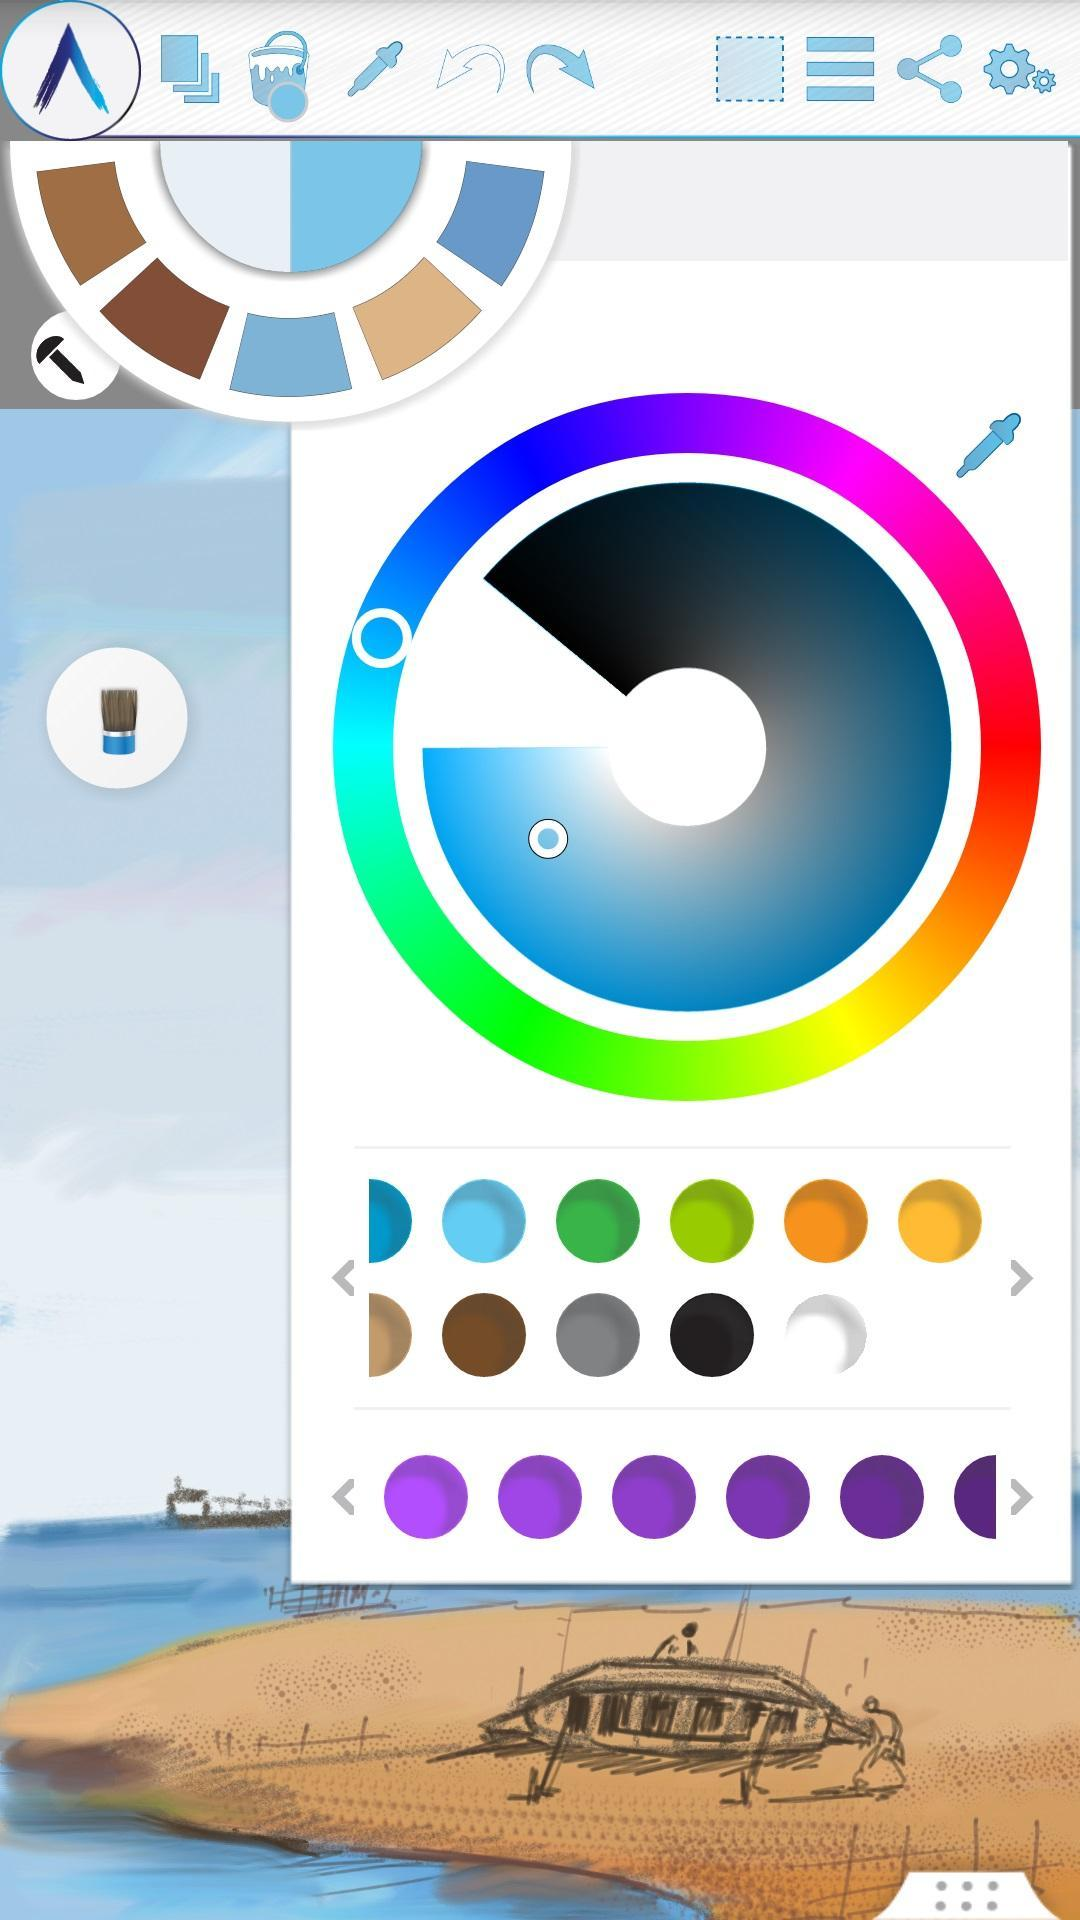 Artecture Draw, Sketch, Paint 5.2.0.4 Screenshot 3